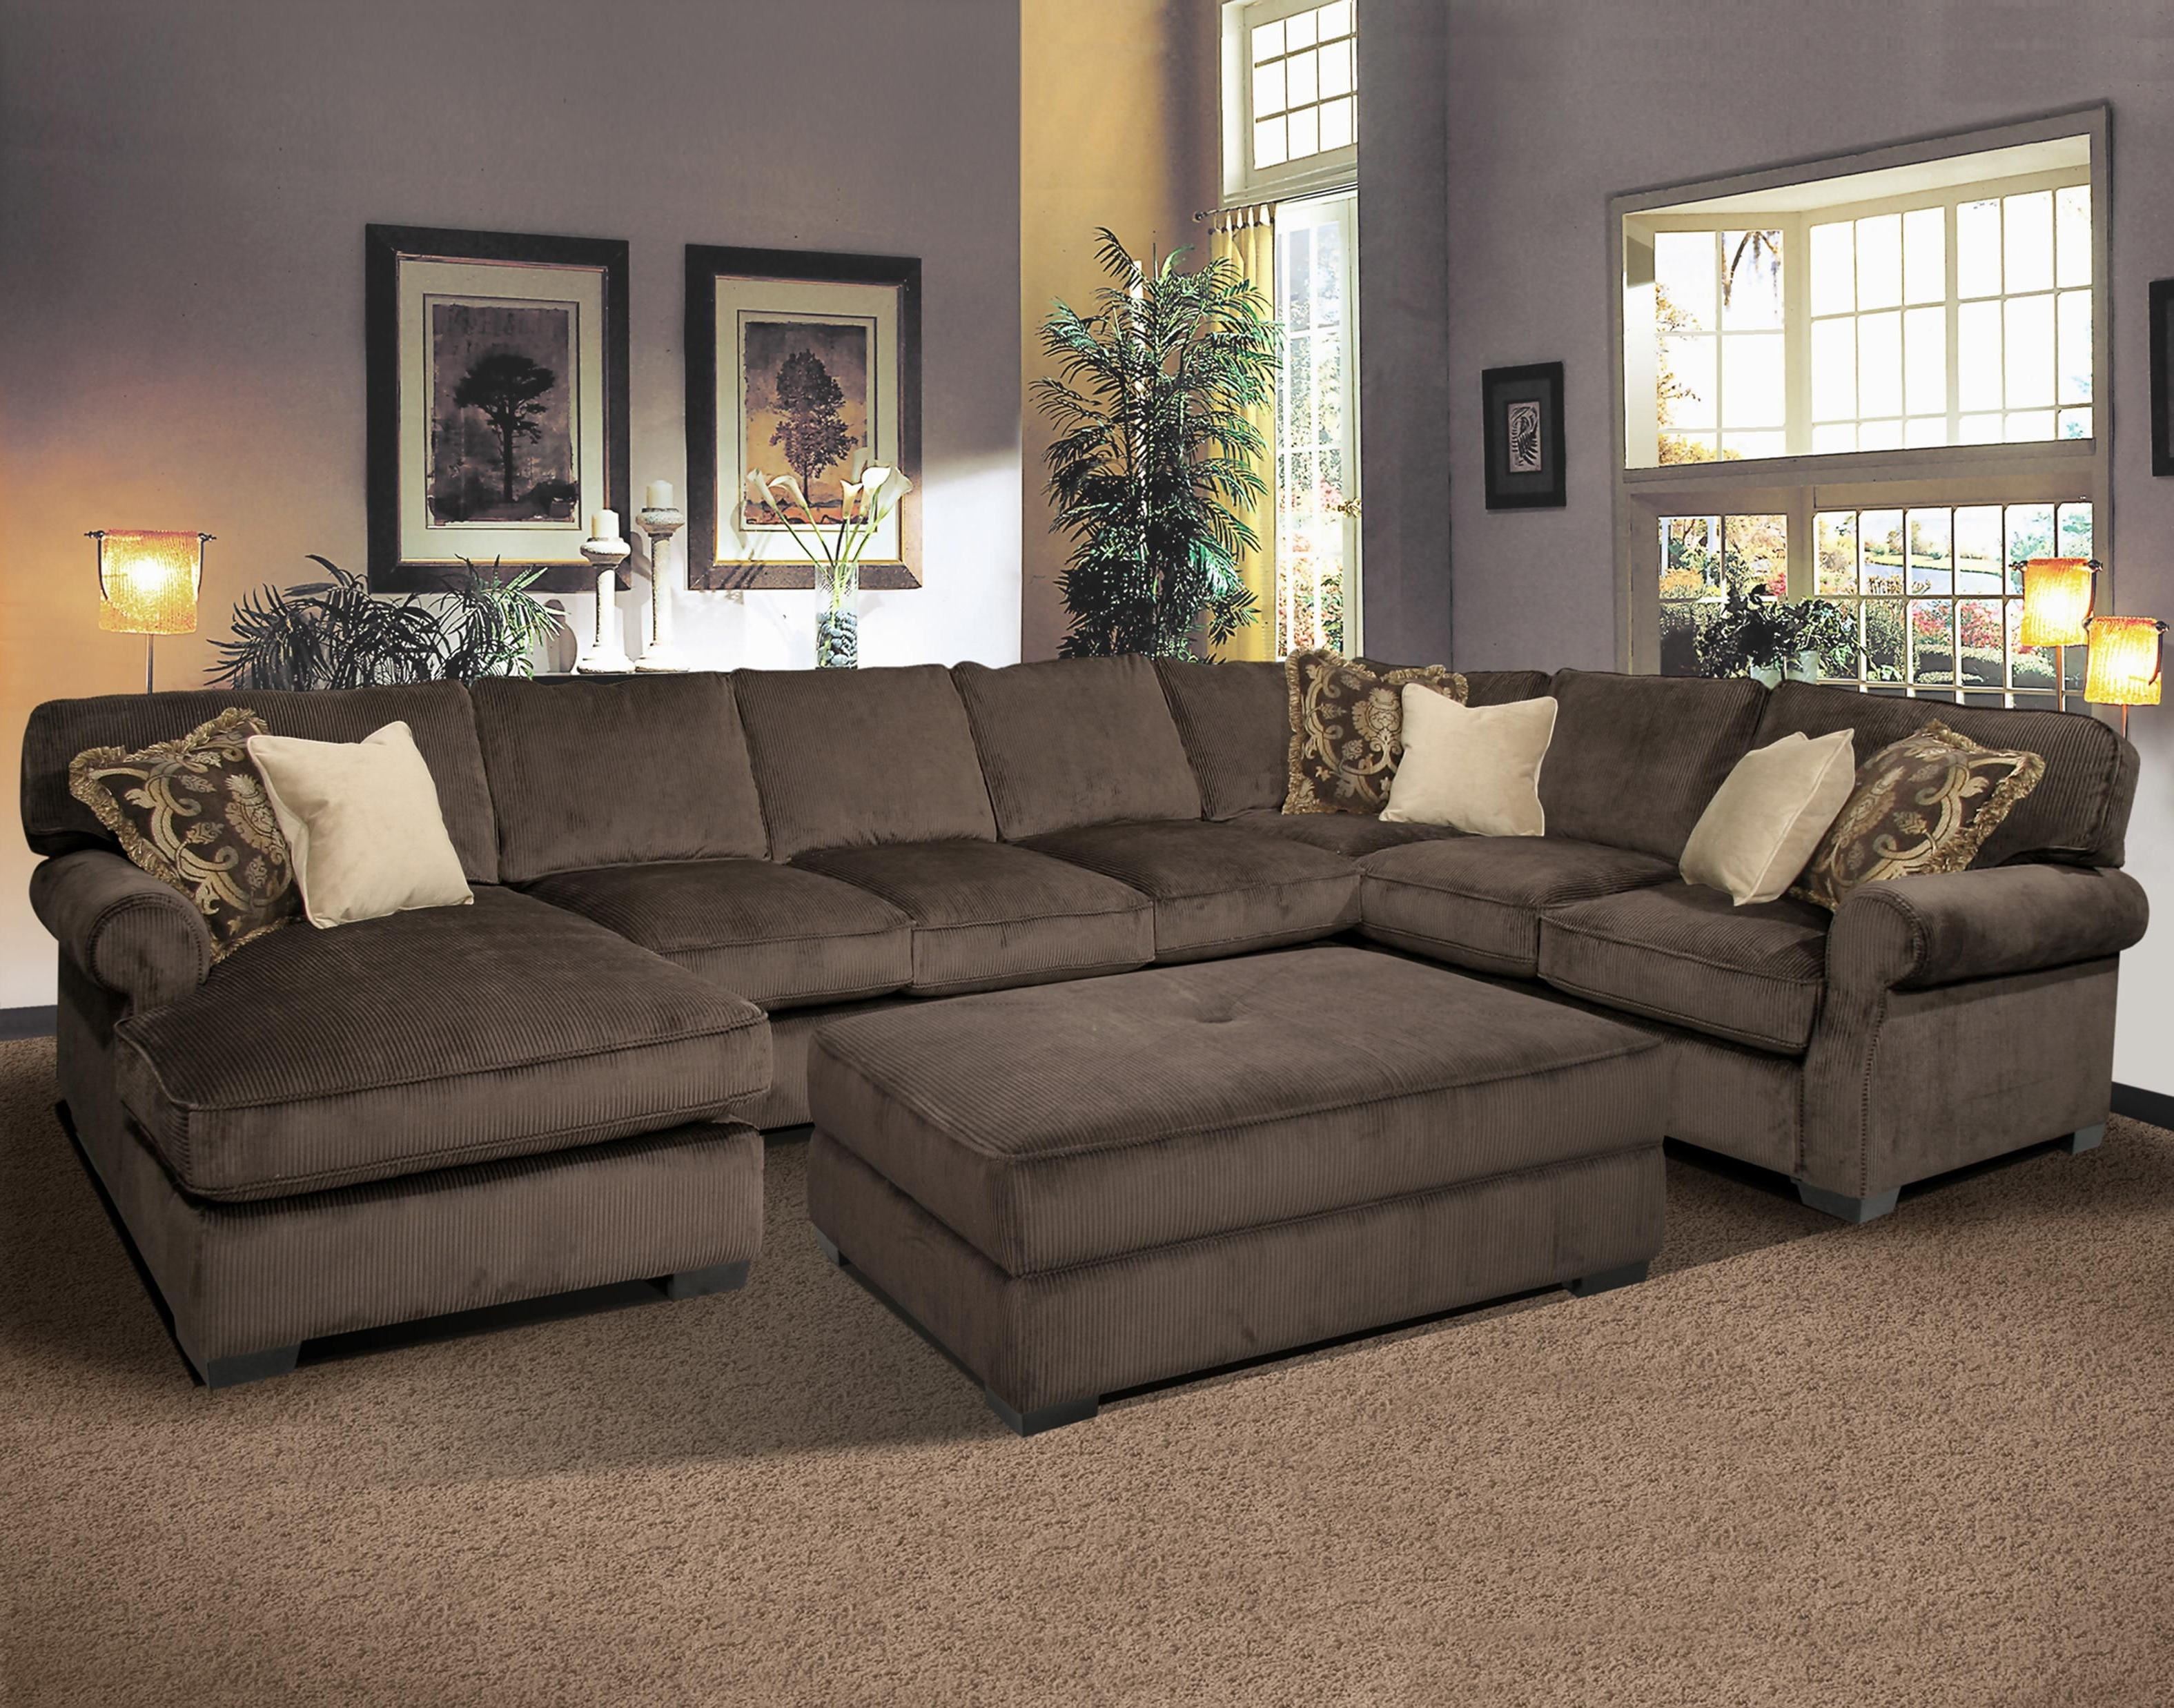 Widely Used Big And Comfy Grand Island Large, 7 Seat Sectional Sofa With Right Inside Huge Sofas (View 15 of 15)